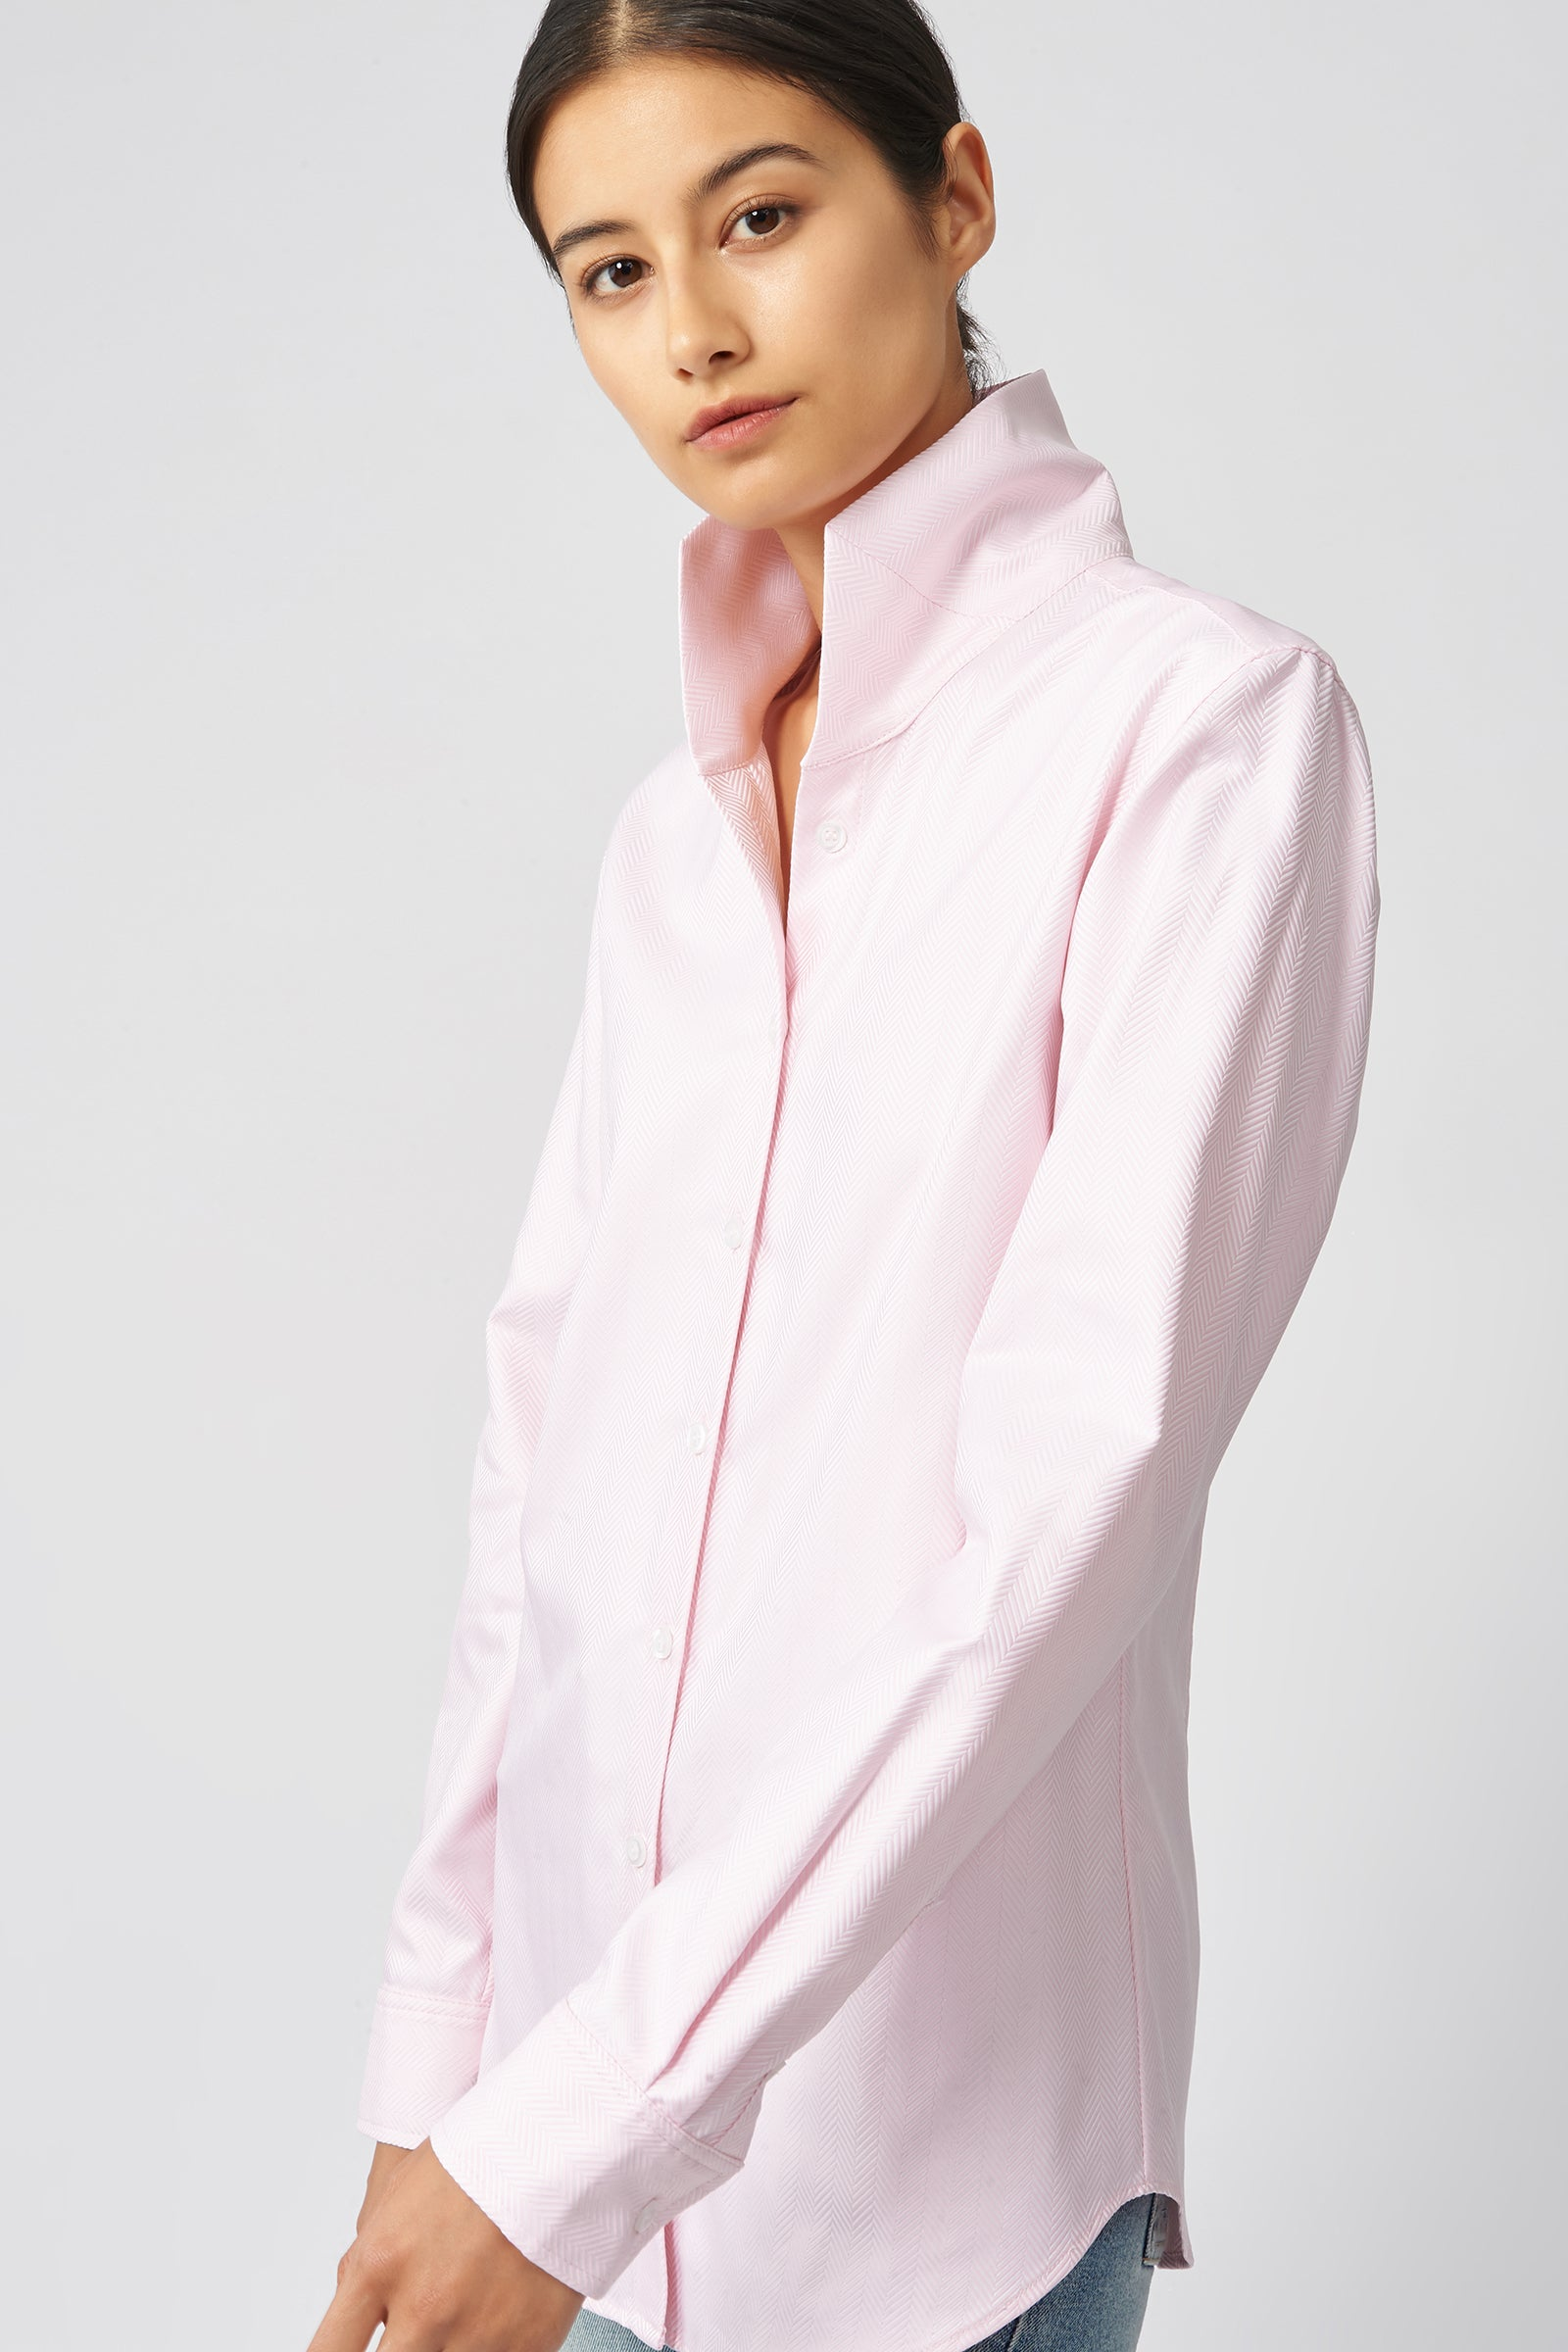 Kal Rieman Ginna Tailored Shirt in Pink Herringbone on Model Front Side View